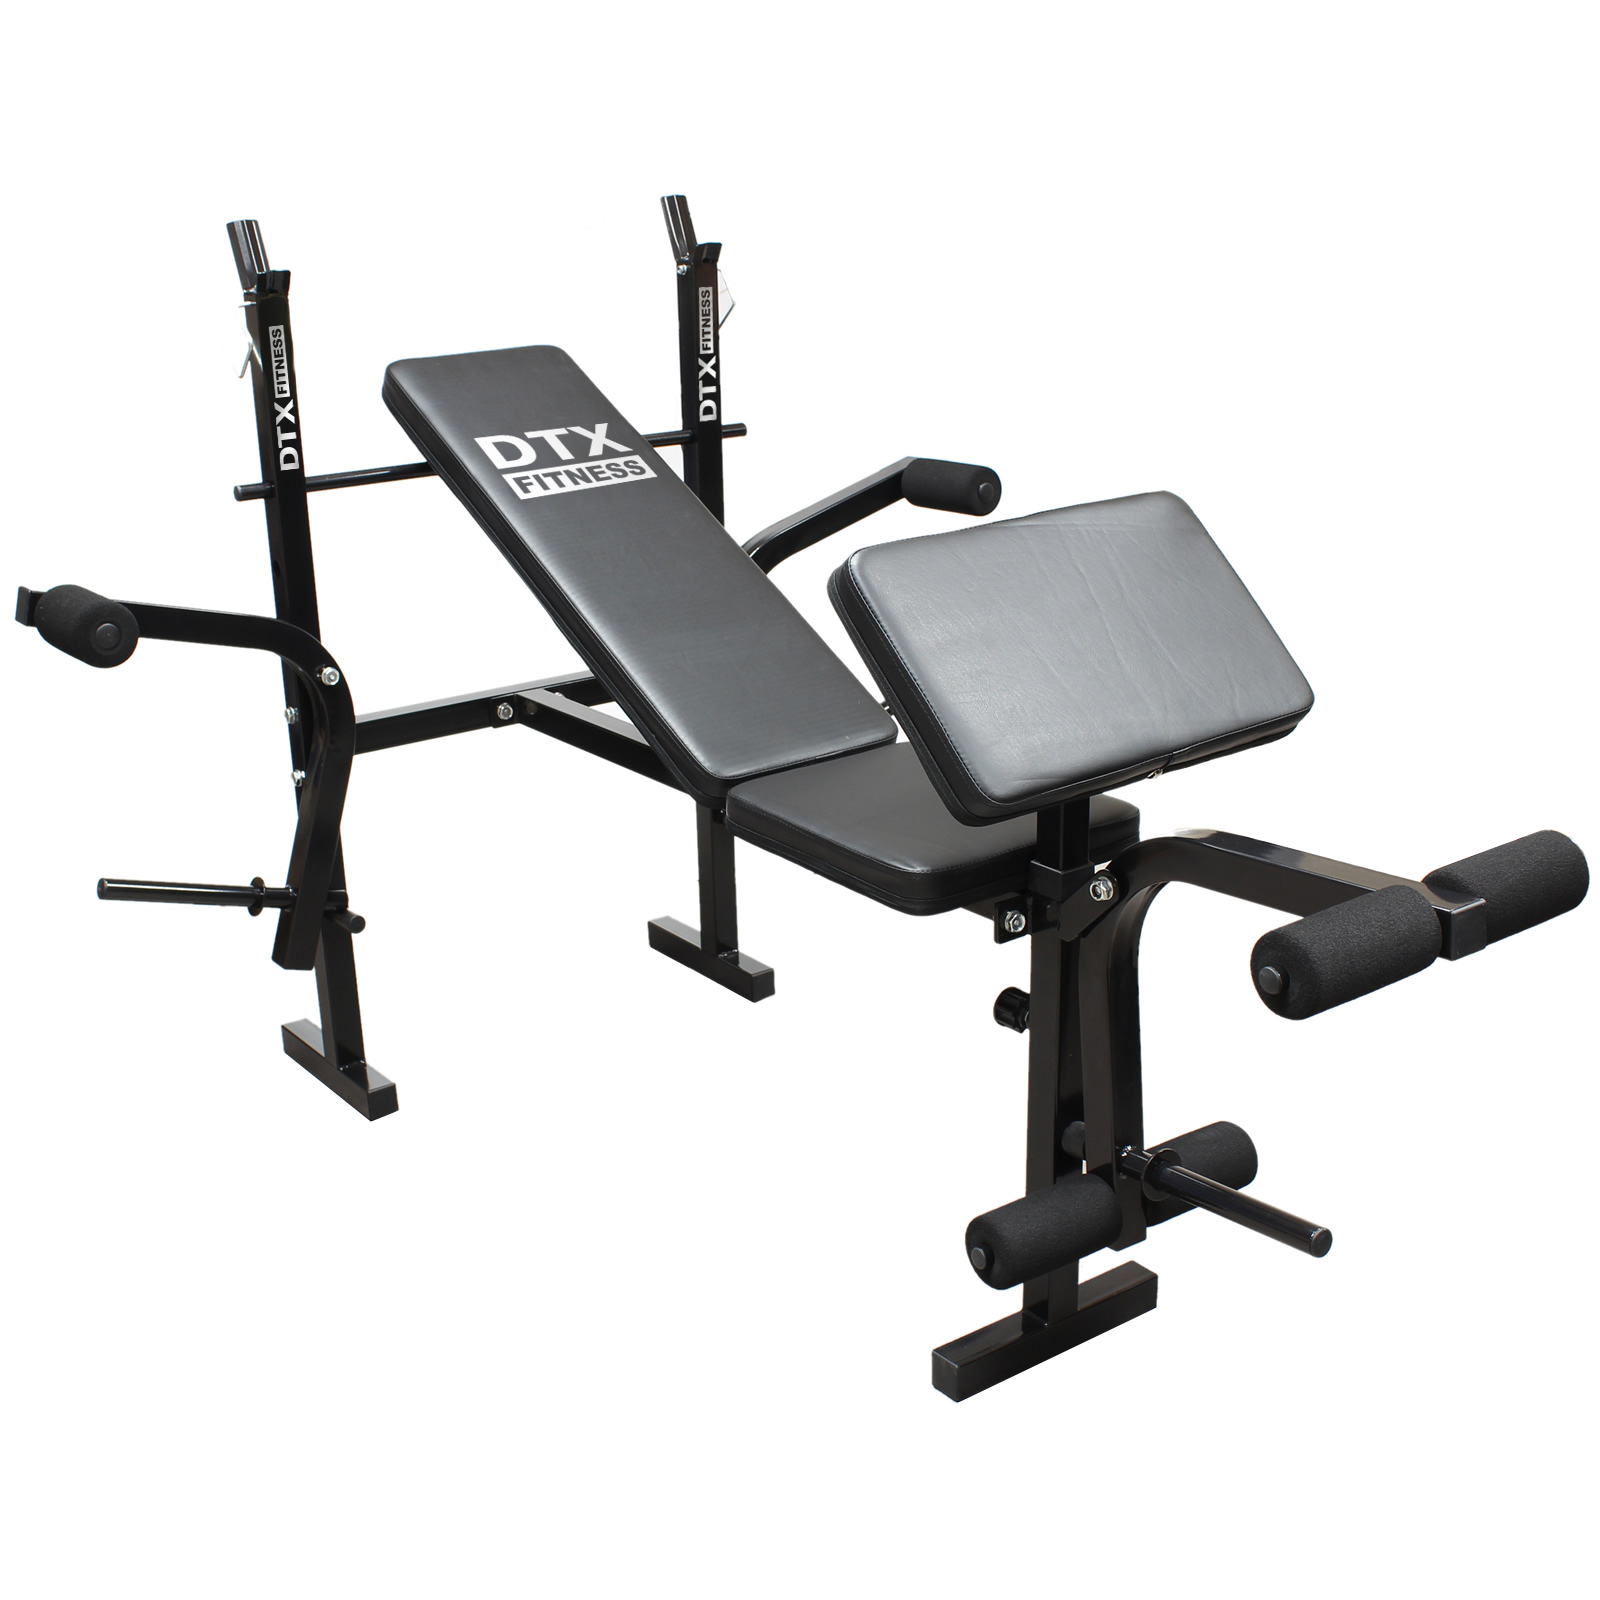 Dtx Fitness Weights Bench Multi Gym Dumbell Workout Leg